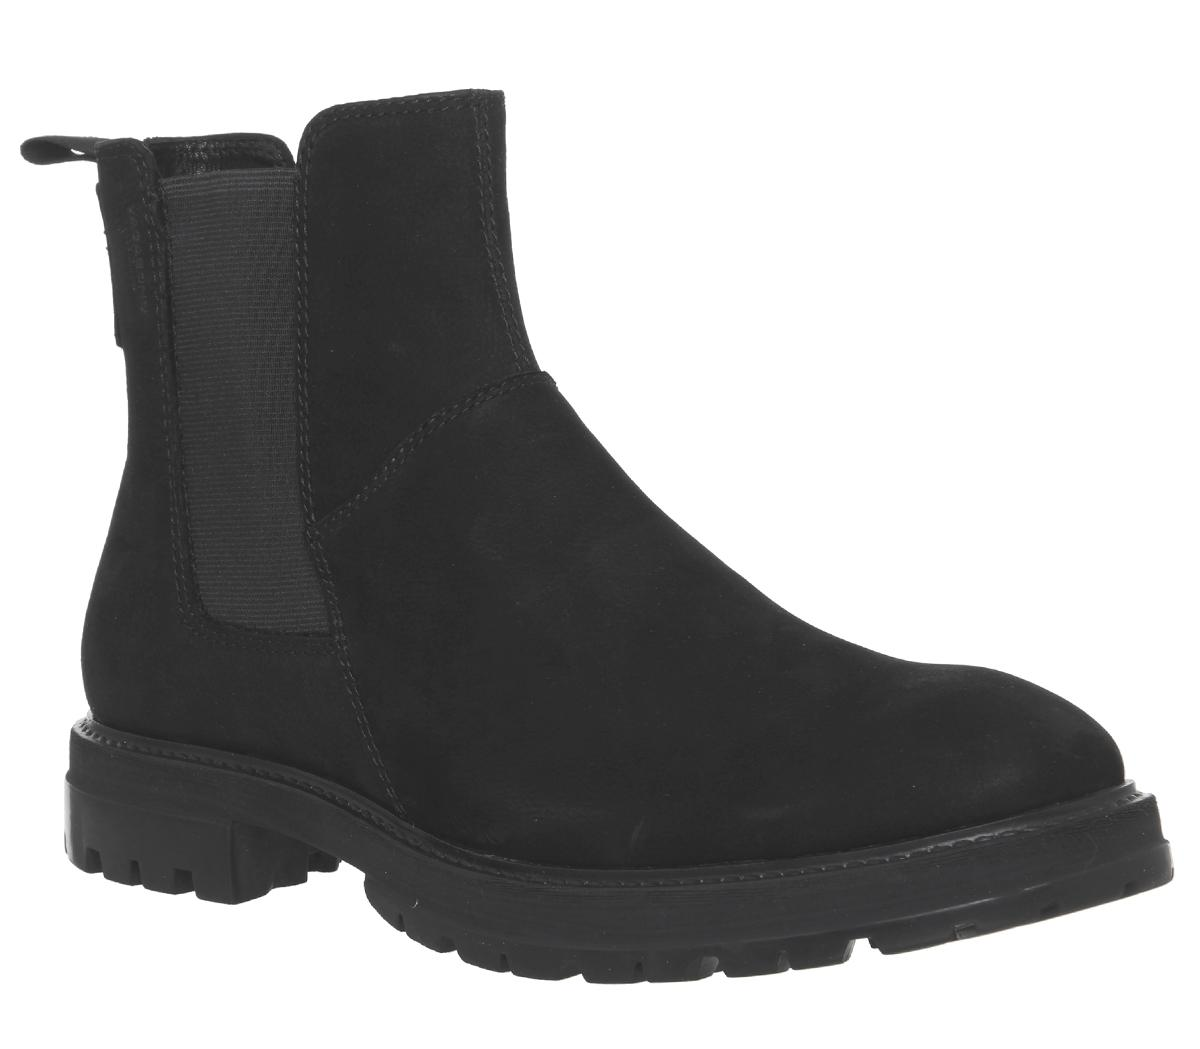 Johnny Chelsea Boots